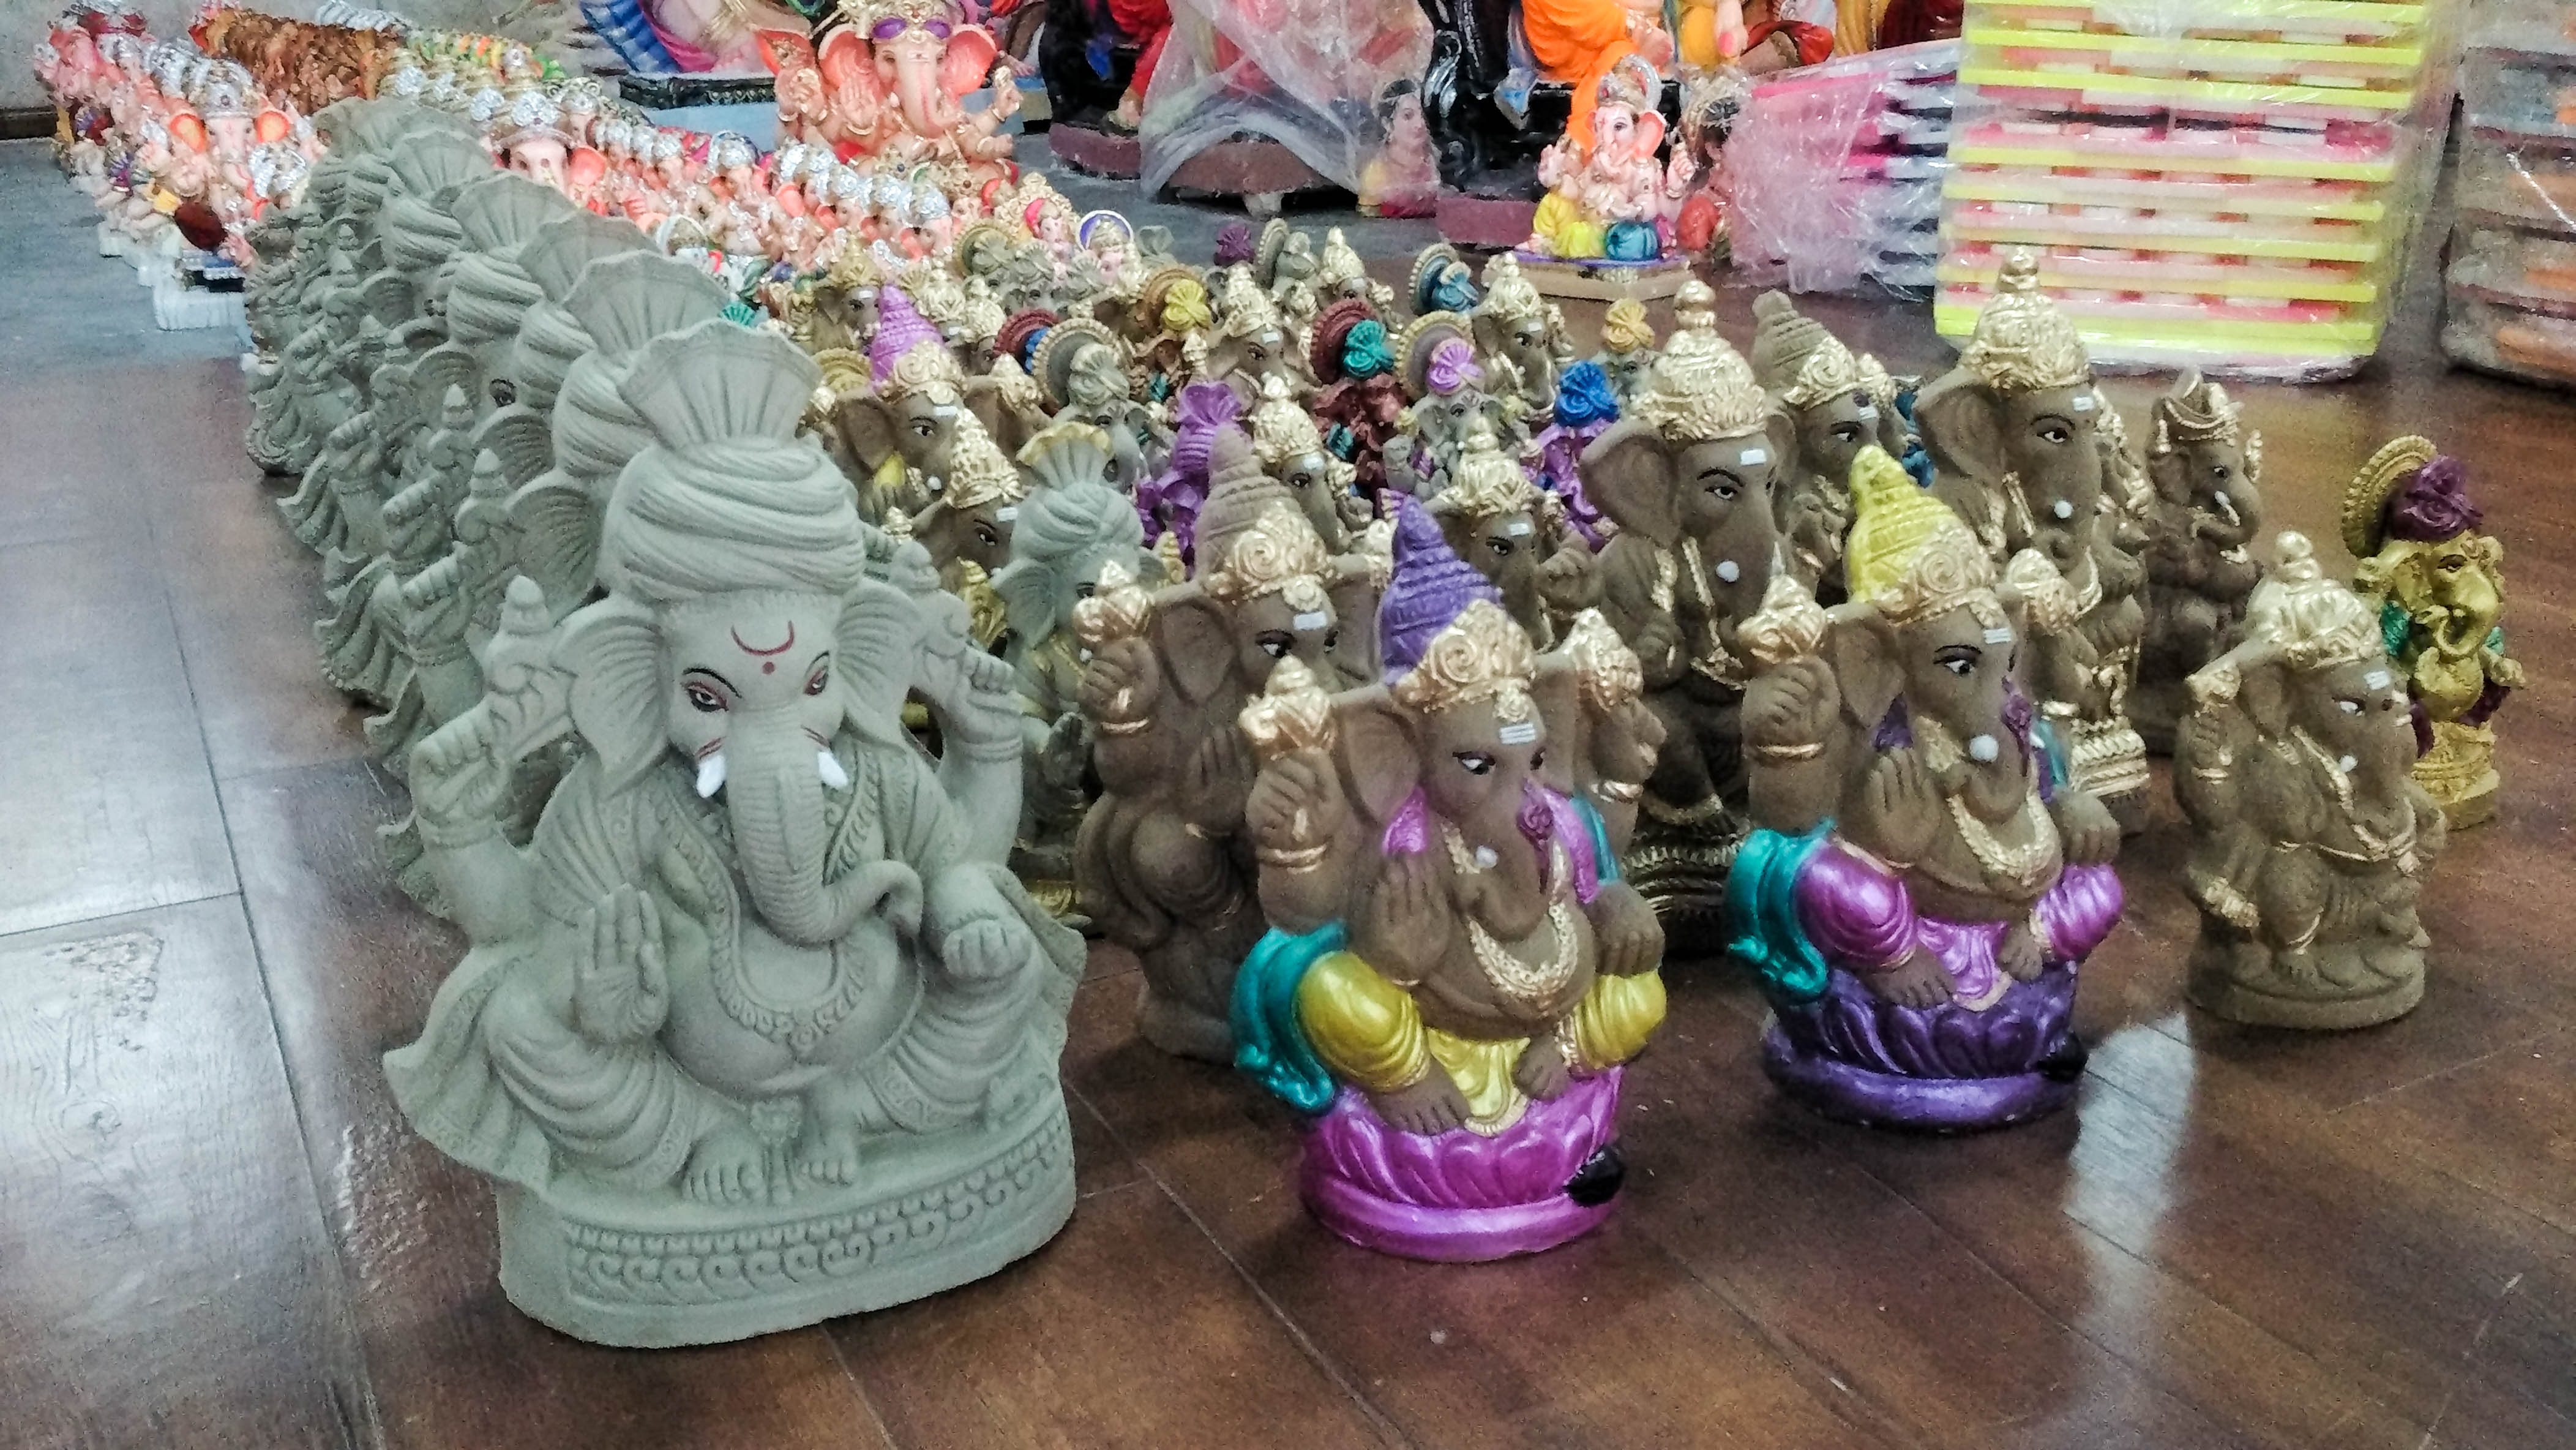 eco friendly ganpati Here's a list of five ganesha idols that caught our attention for supporting a unique social cause while being eco-friendly.